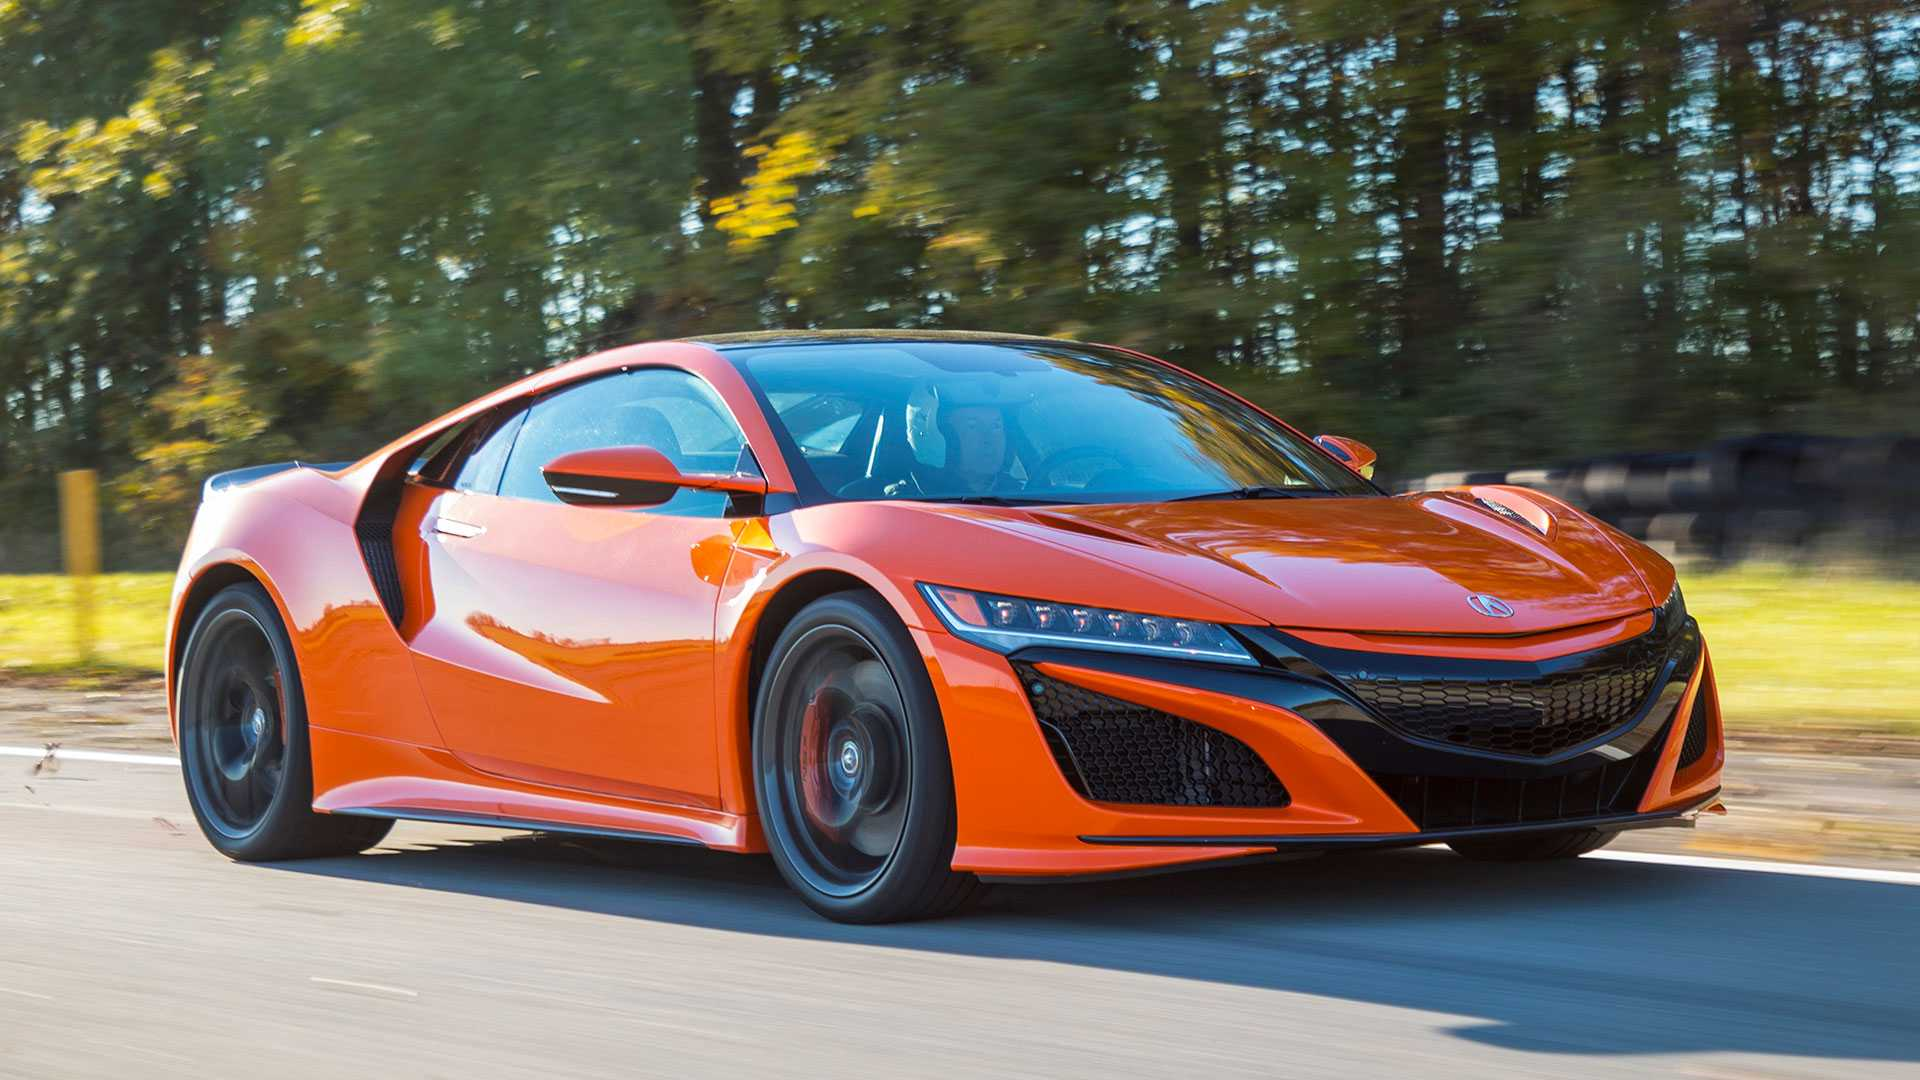 70 The Best 2019 Honda Nsx Release Date And Concept